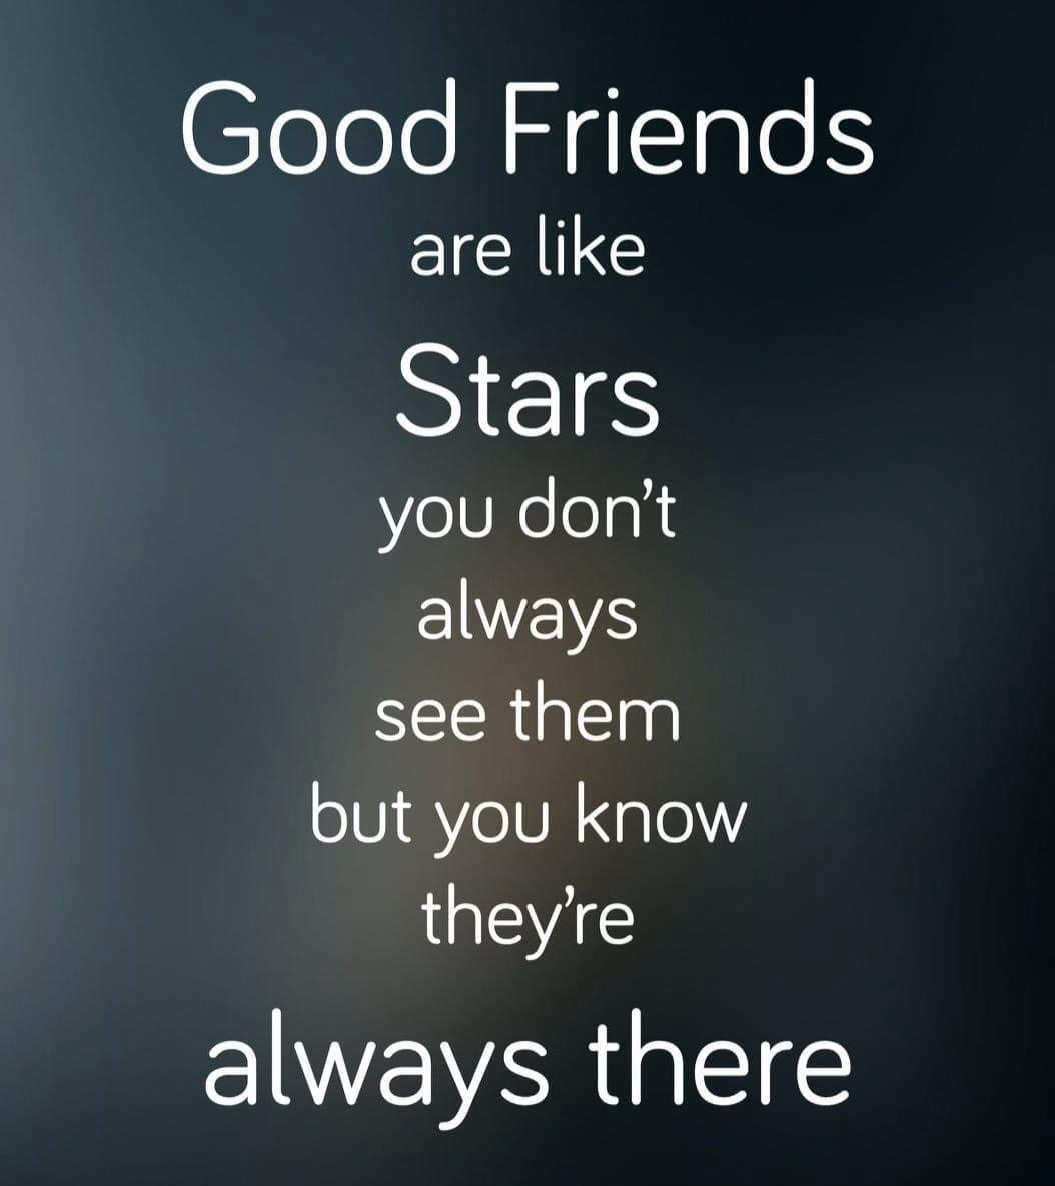 Good Friends are like stars 🌟